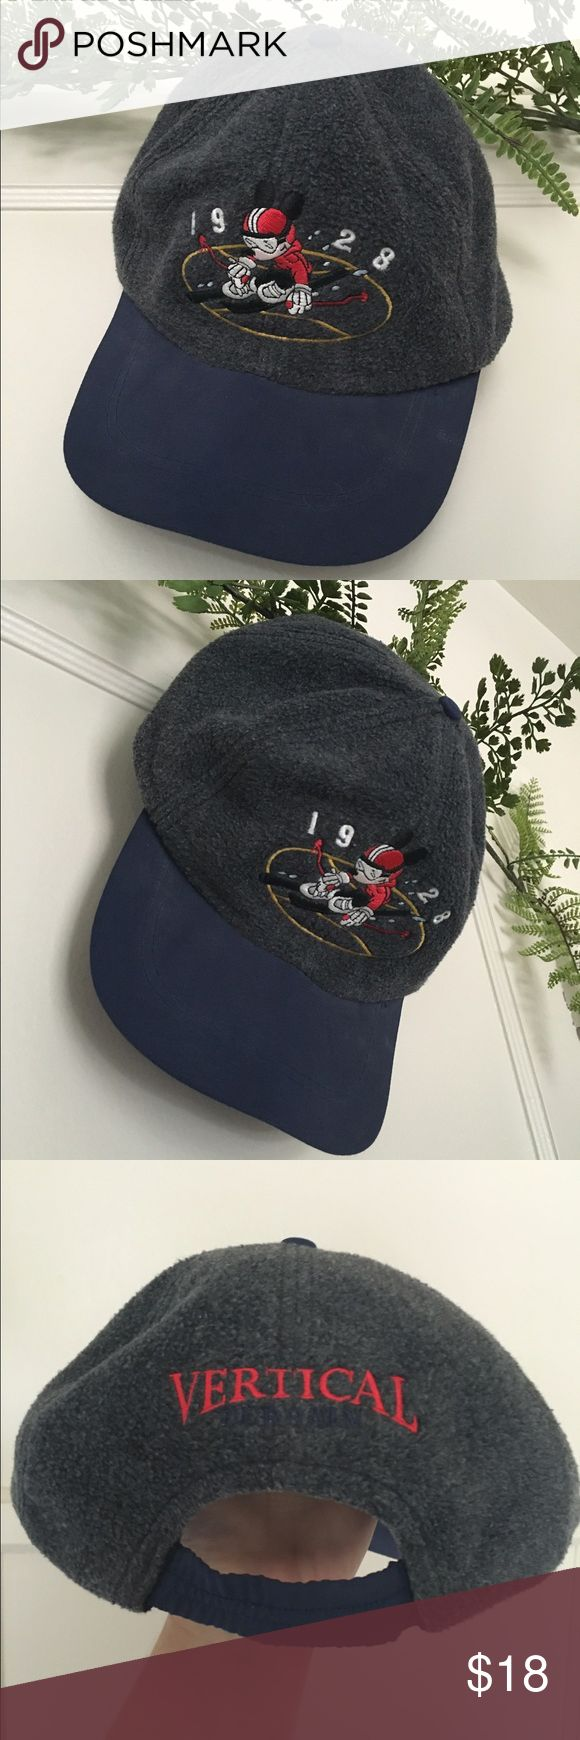 Vintage Mickey Mouse Baseball Cap Vintage unisex Mickey Mouse baseball cap from early 90s. Navy blue bill and dark grey cap, there is no tag or size label but best fits a M/L size for caps. Accessories Hats